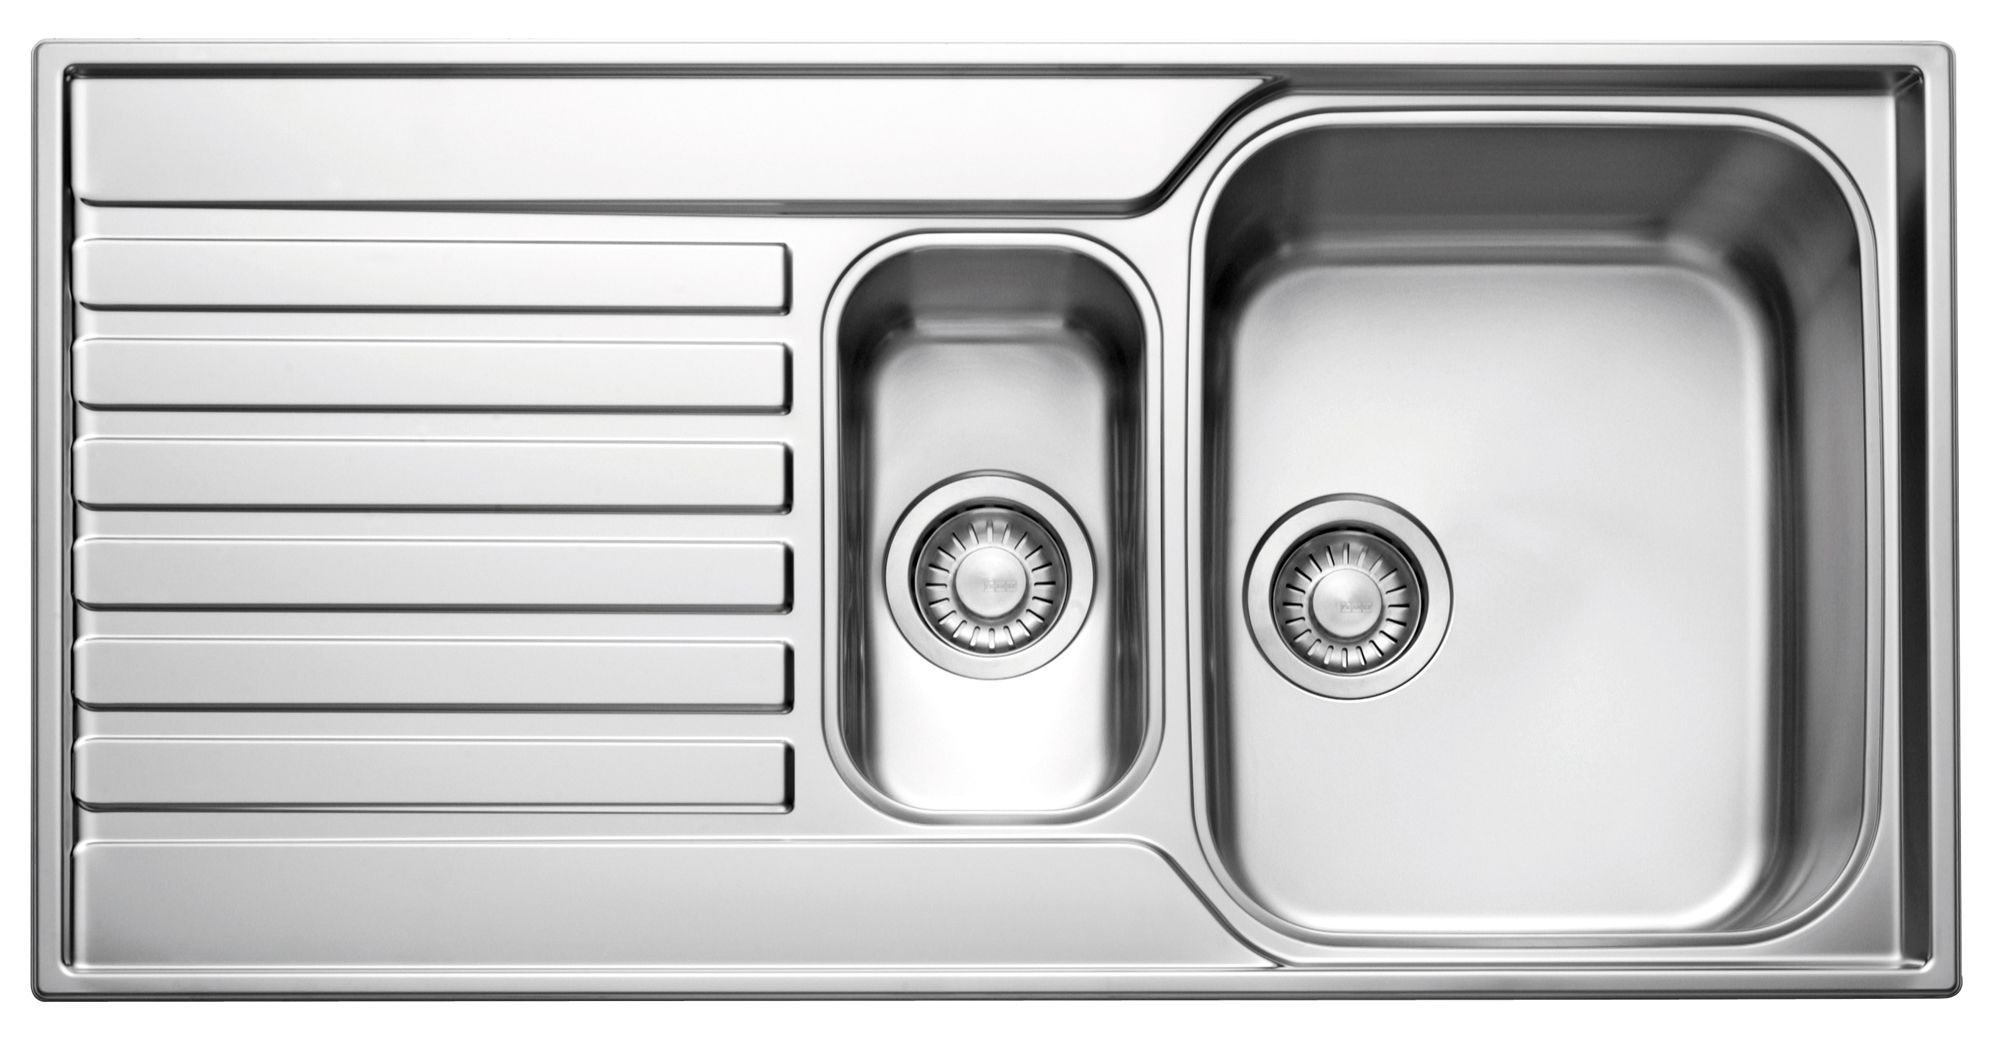 double bowl sinks | kitchen sinks | kitchen | departments | diy at b&q